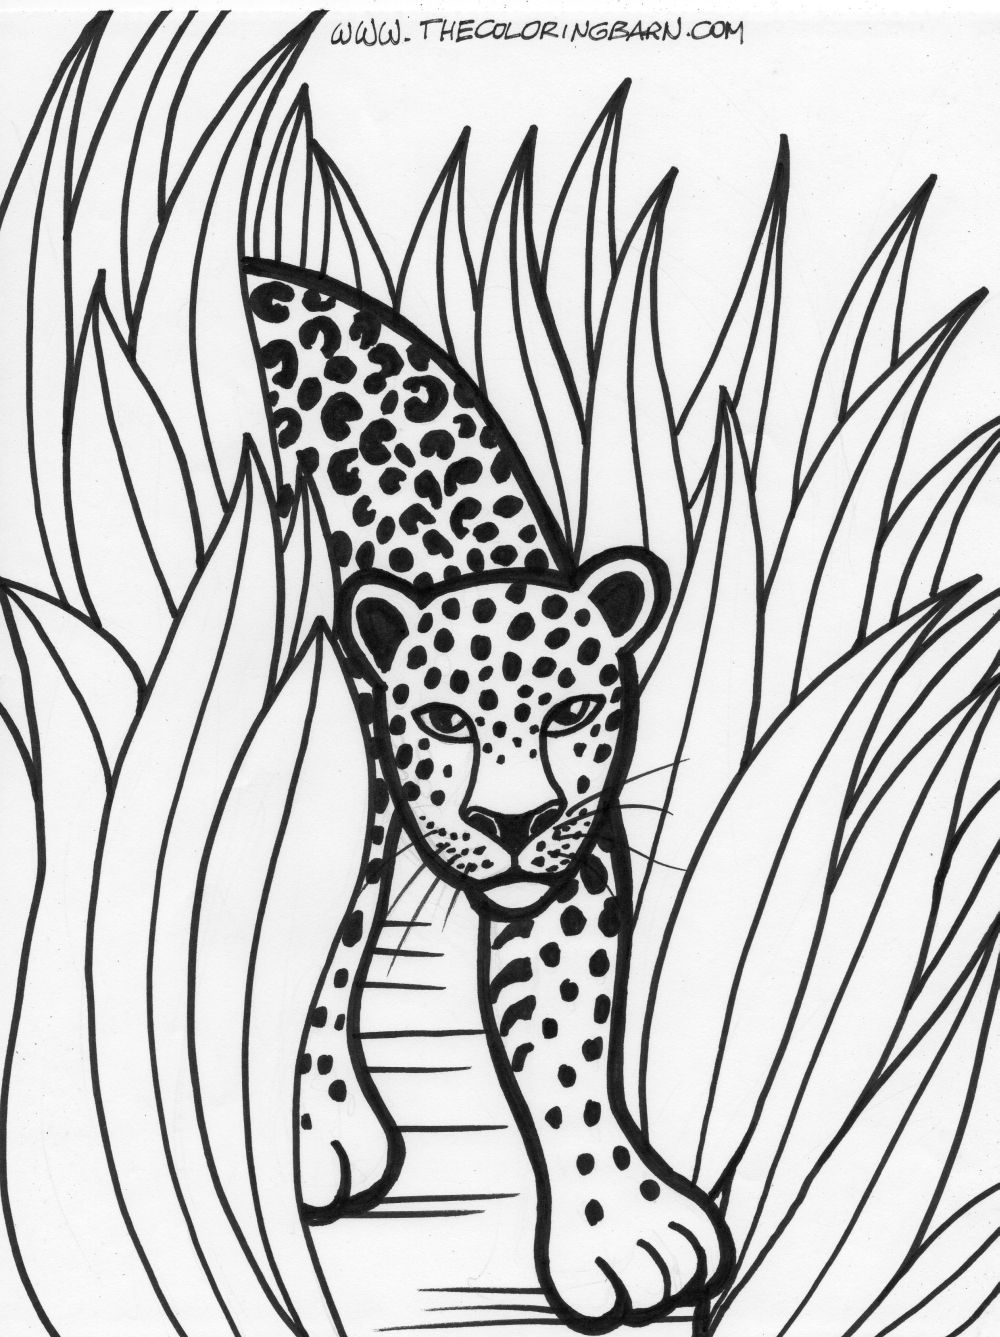 rainforest coloring page. rainforest free coloring pages printable ...